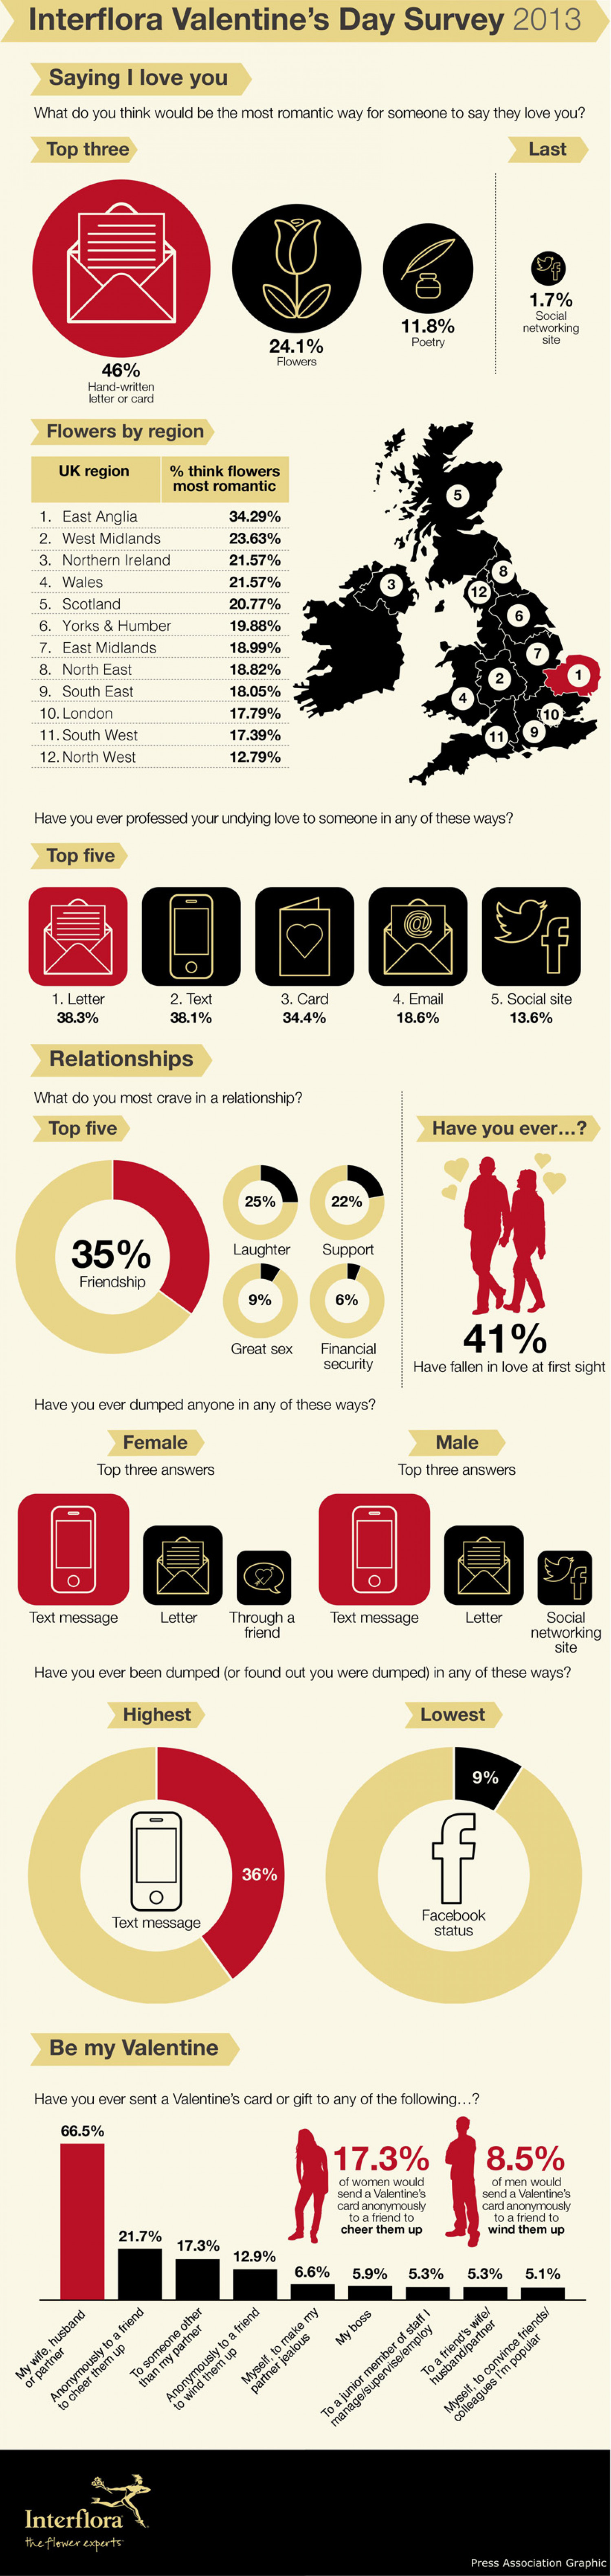 Interflora Valentine's Day Survey 2013 Infographic